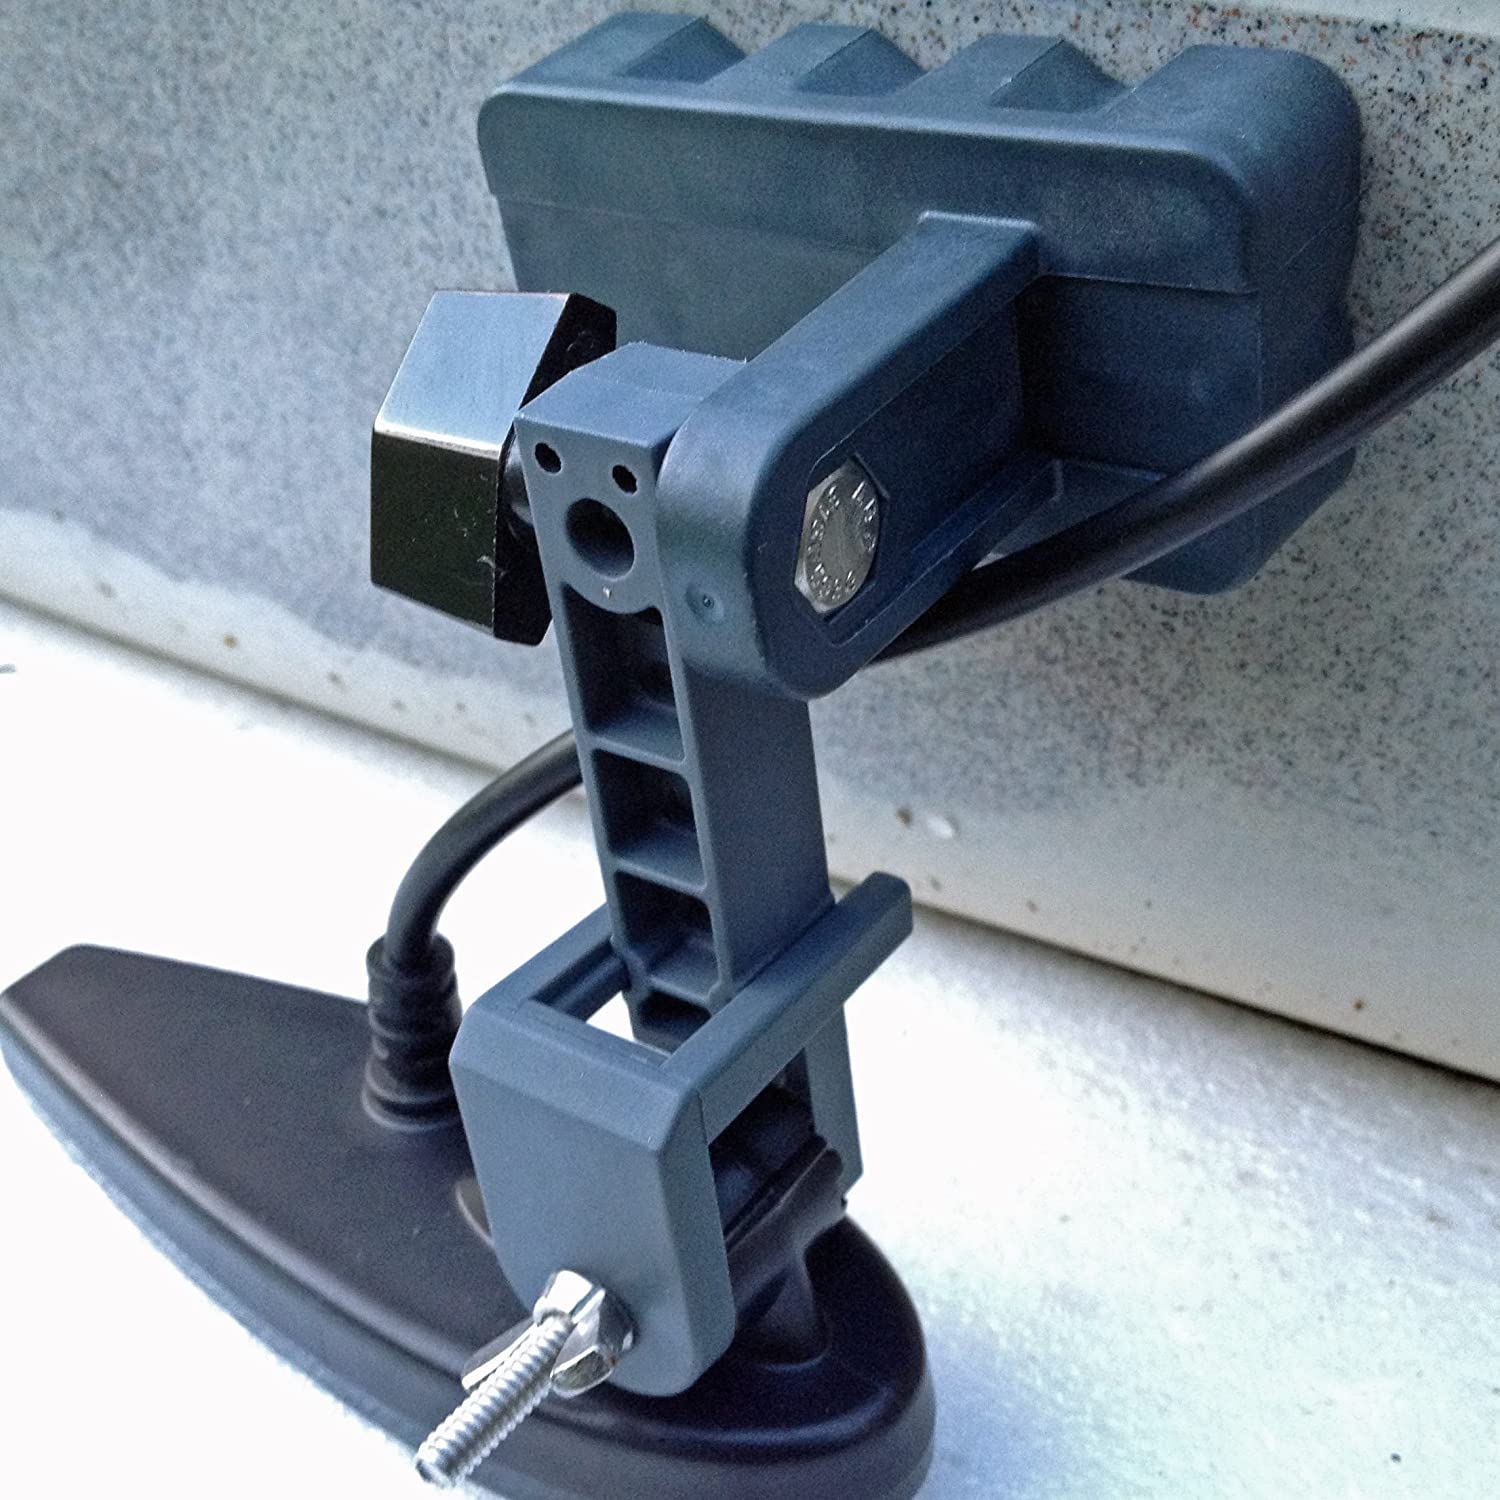 15mm Magnetic Transducer Mount